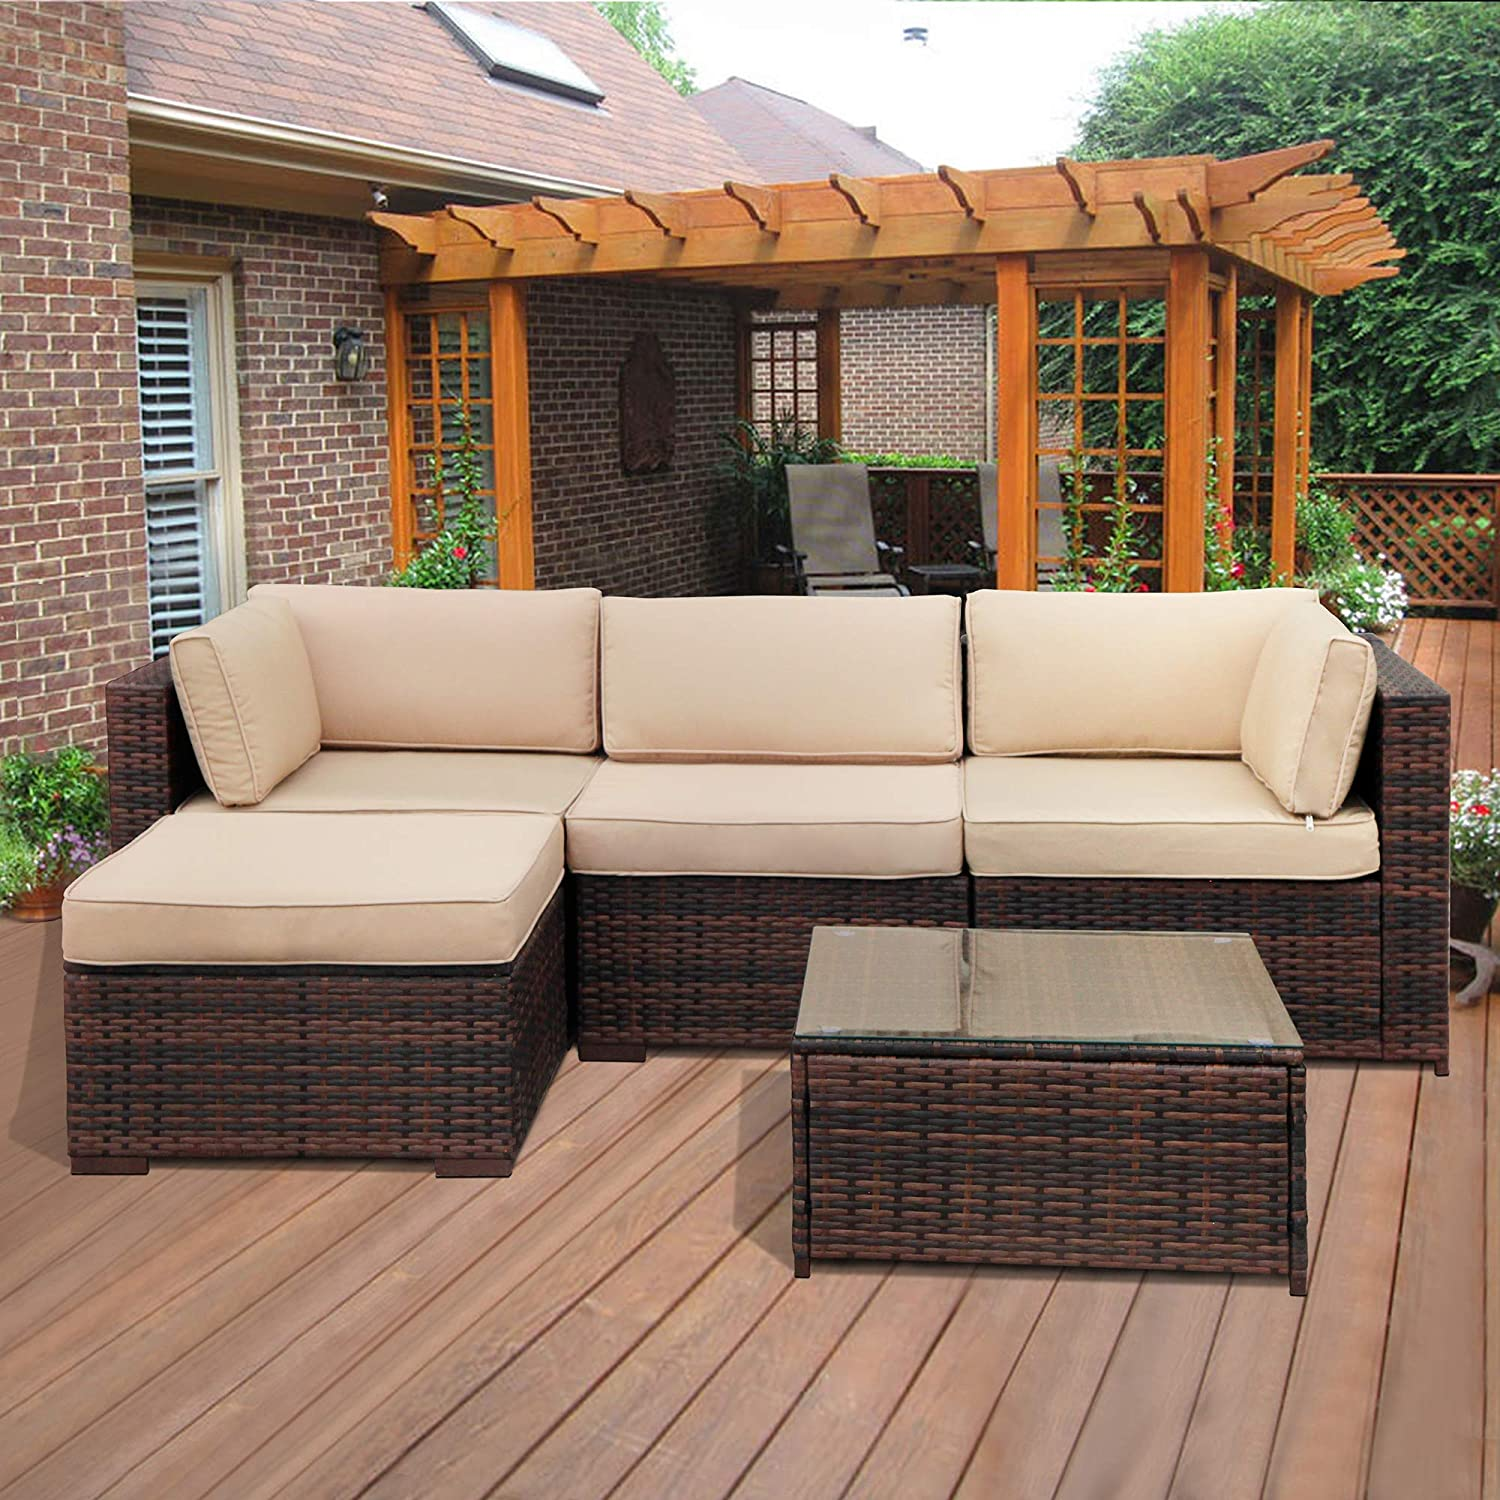 Super patio outdoor patio furniture set 5 piece all weather pe brown wicker set sofas with glass coffee table and ottoman steel frame beige cushions